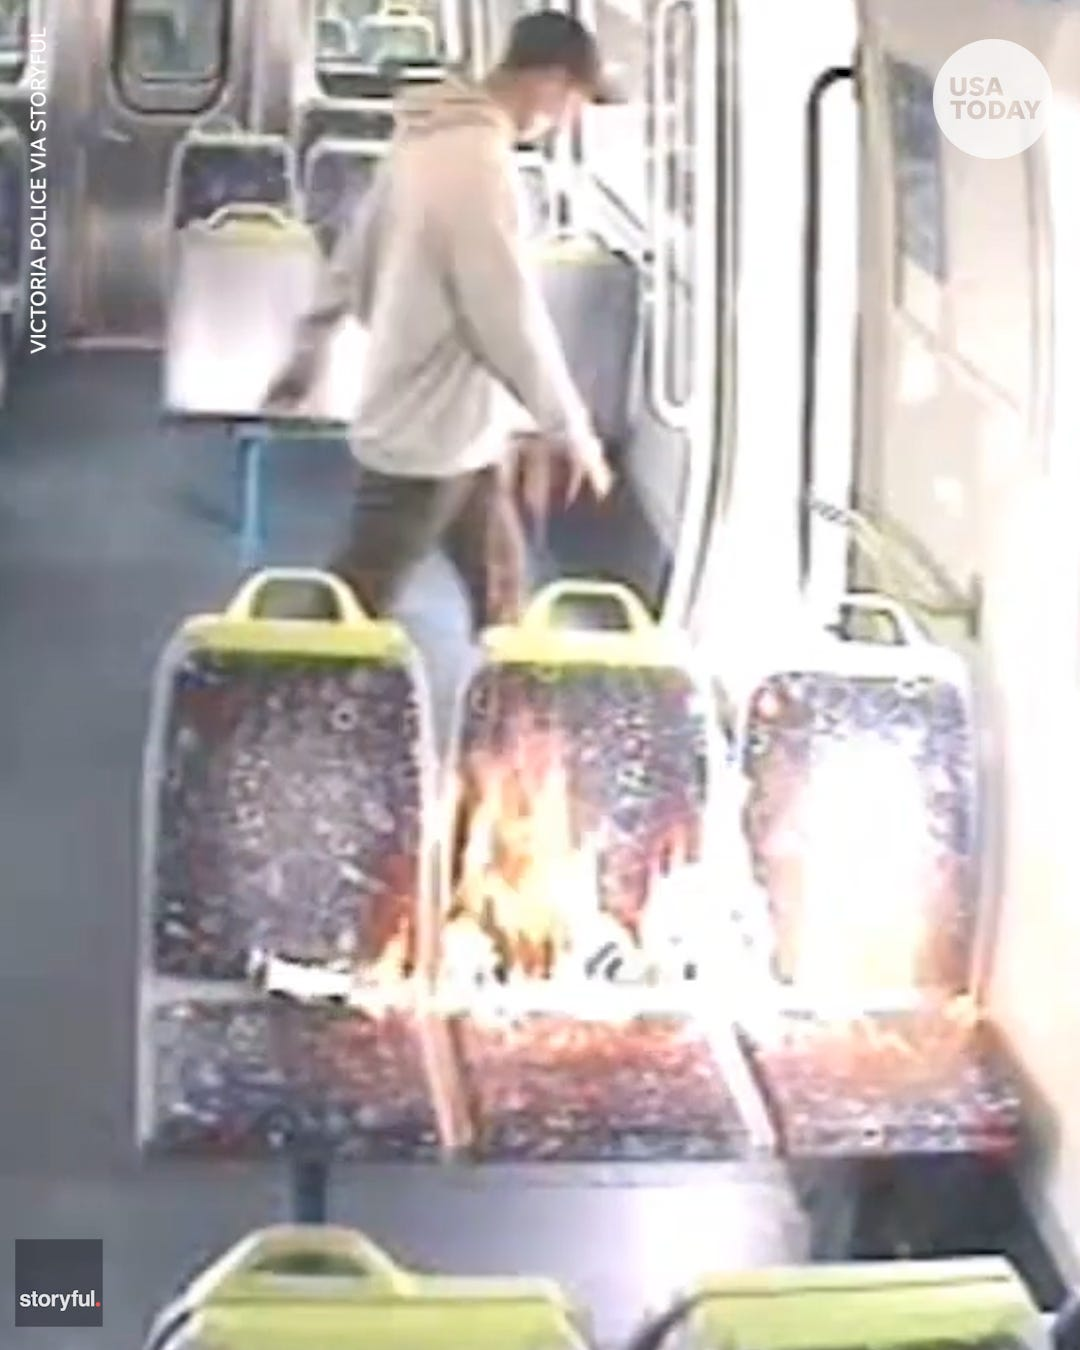 Man pours accelerant onto Melbourne train seat and lit it on fire